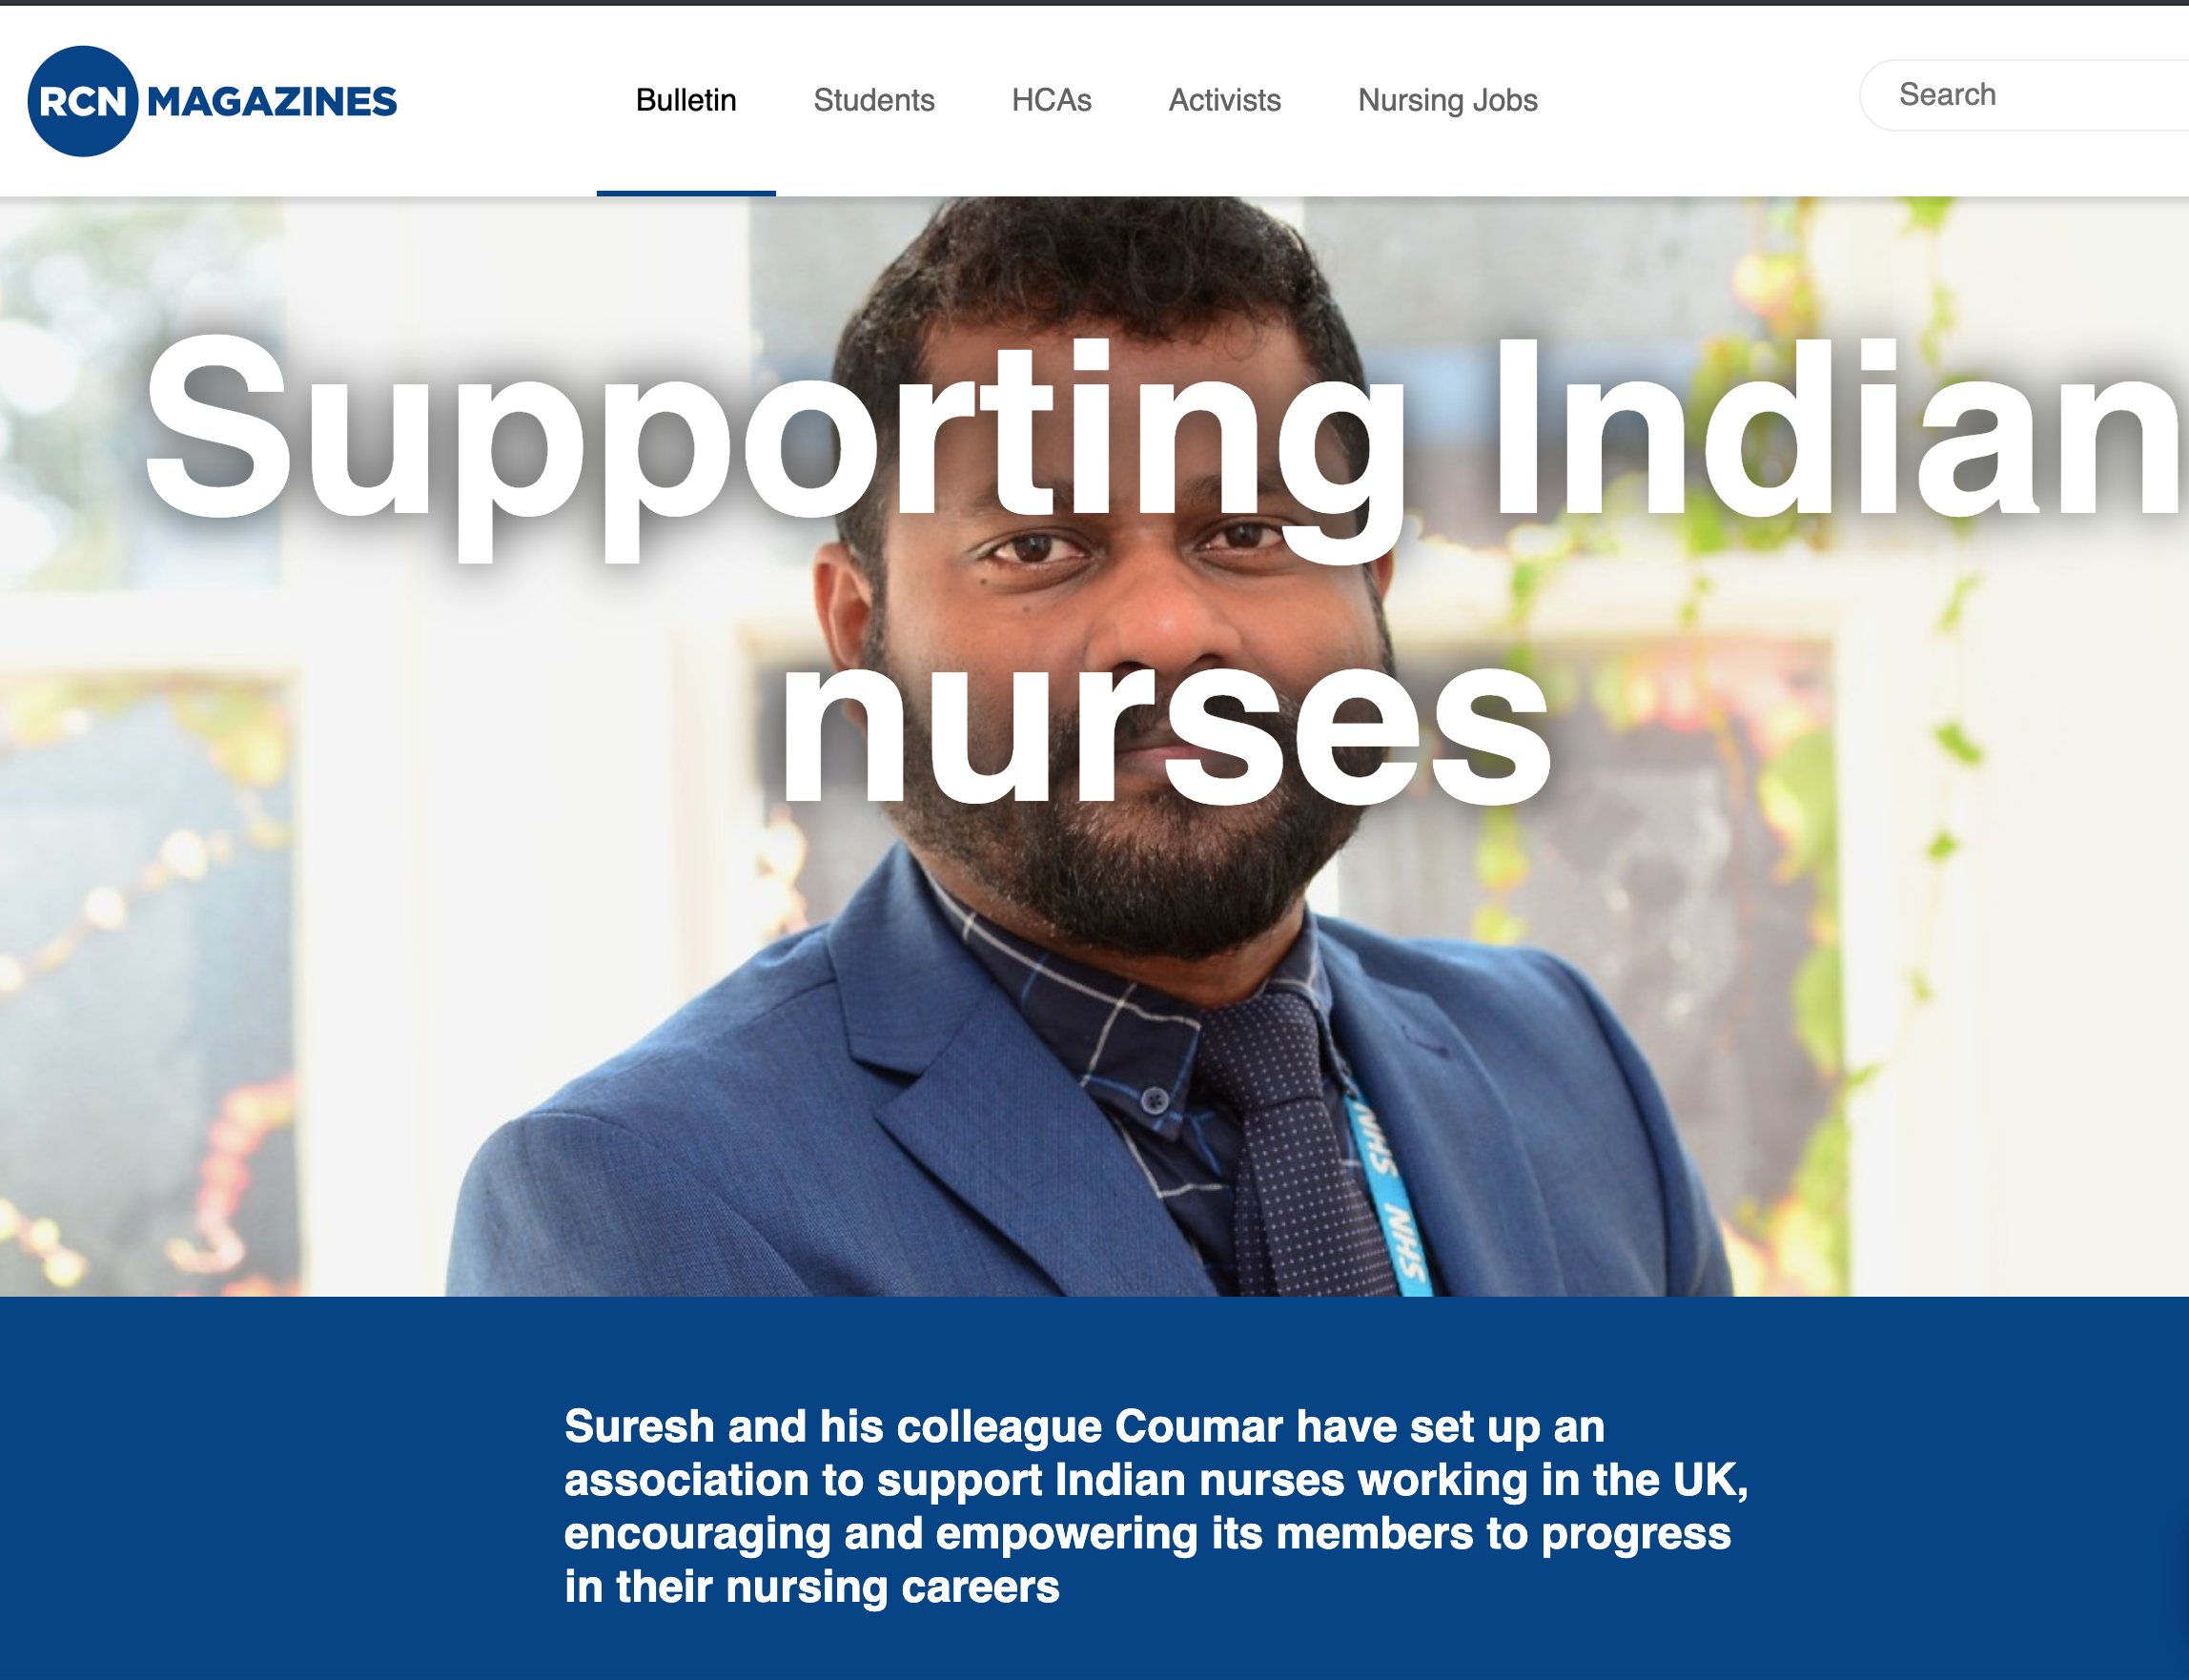 Supporting Indian nurses